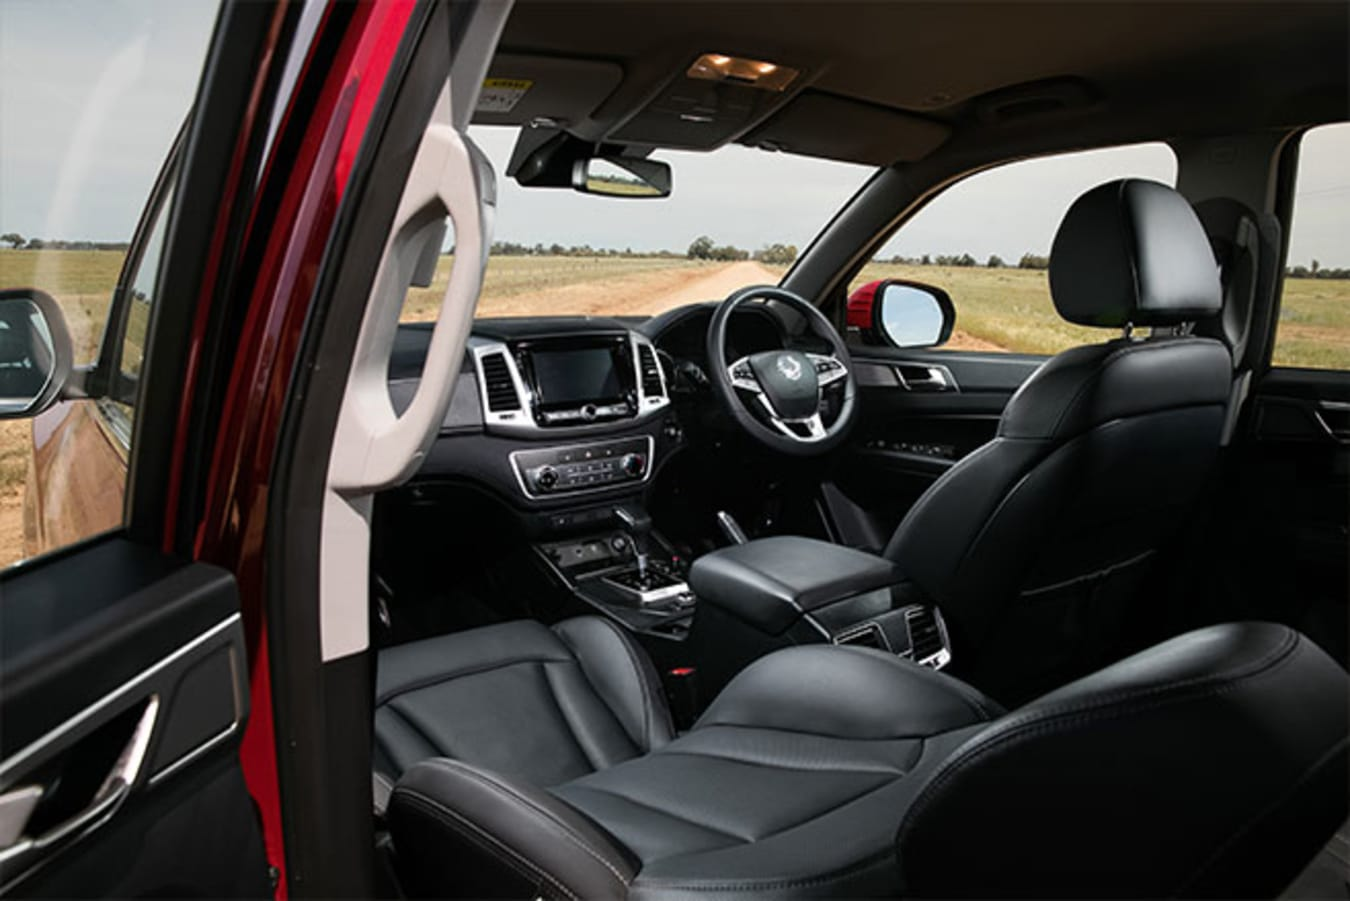 SsangYong Musso XLV Ultimate interior